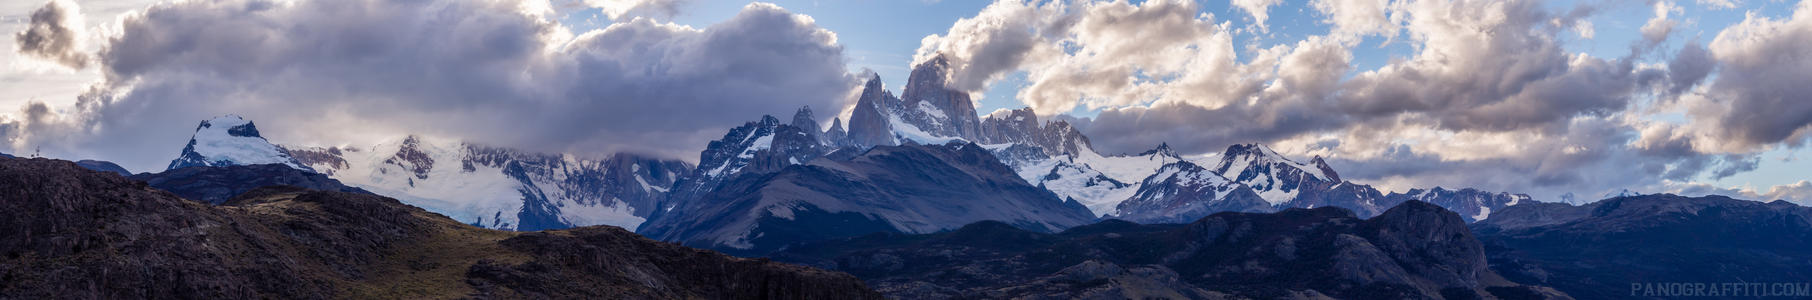 Fitz Roy from Las Aguilas - View of Fitz Roy far off in the distance surrounded by clouds